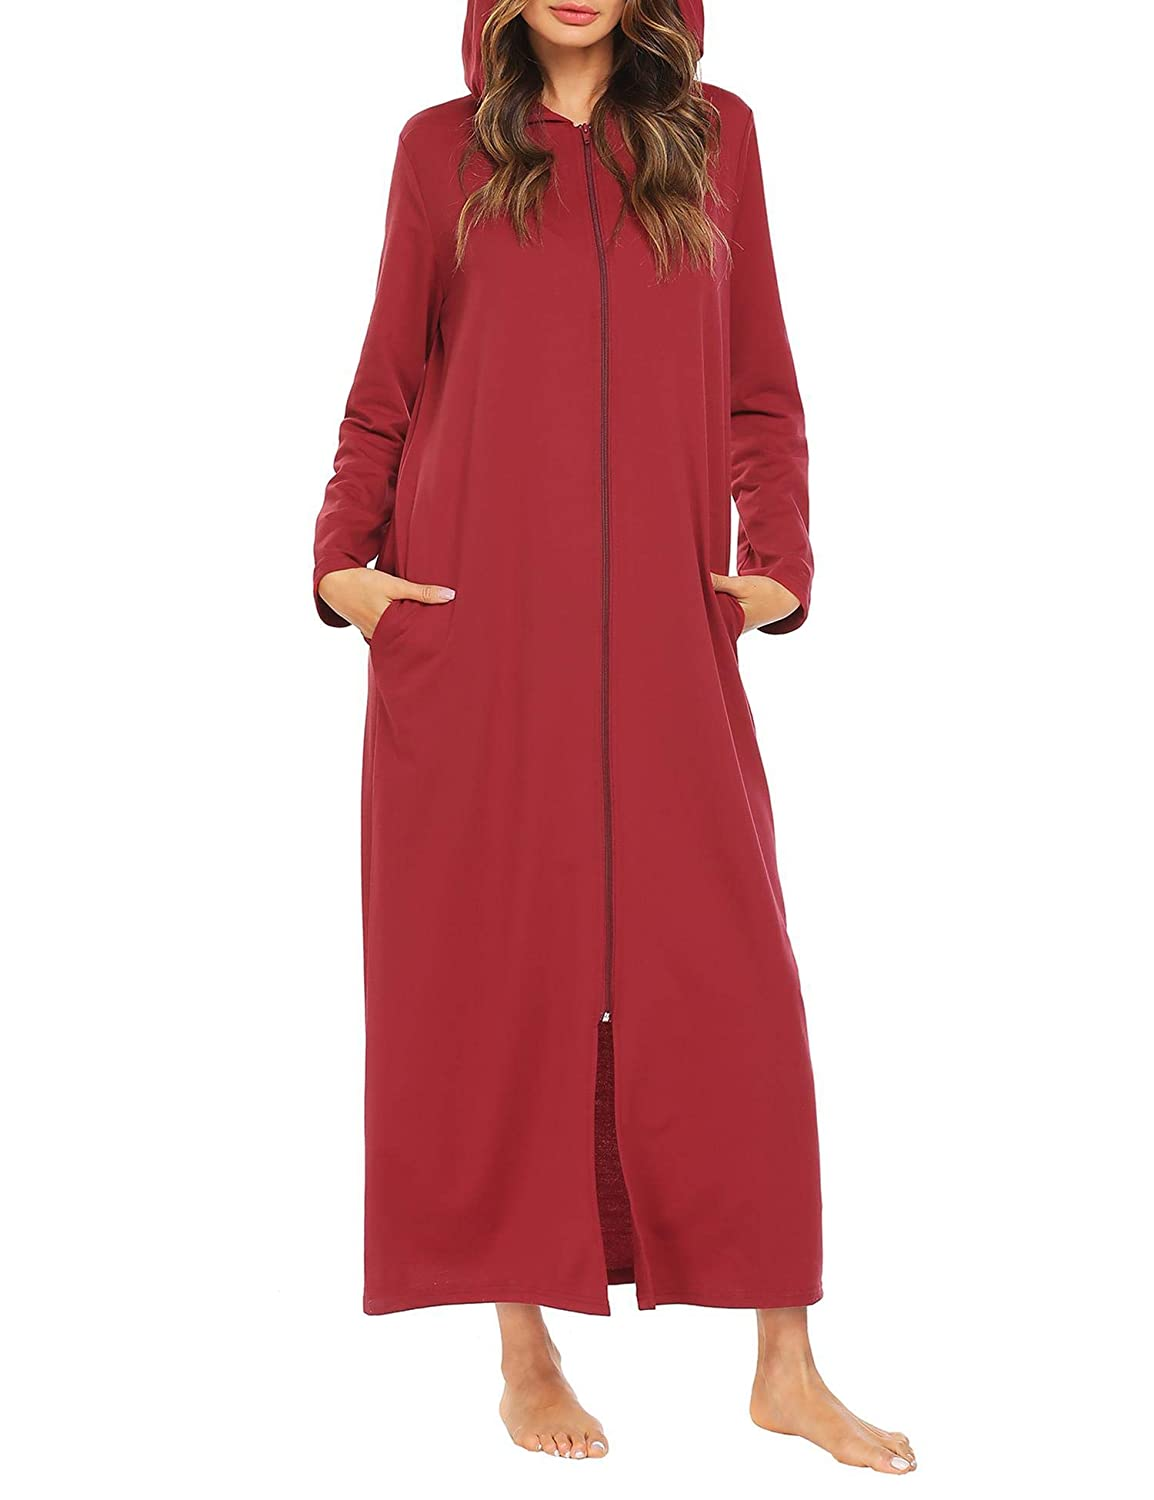 Aimage Women Plus Size Zip-Front Hooded Dresses Long Robe Sleepwear Nightdress